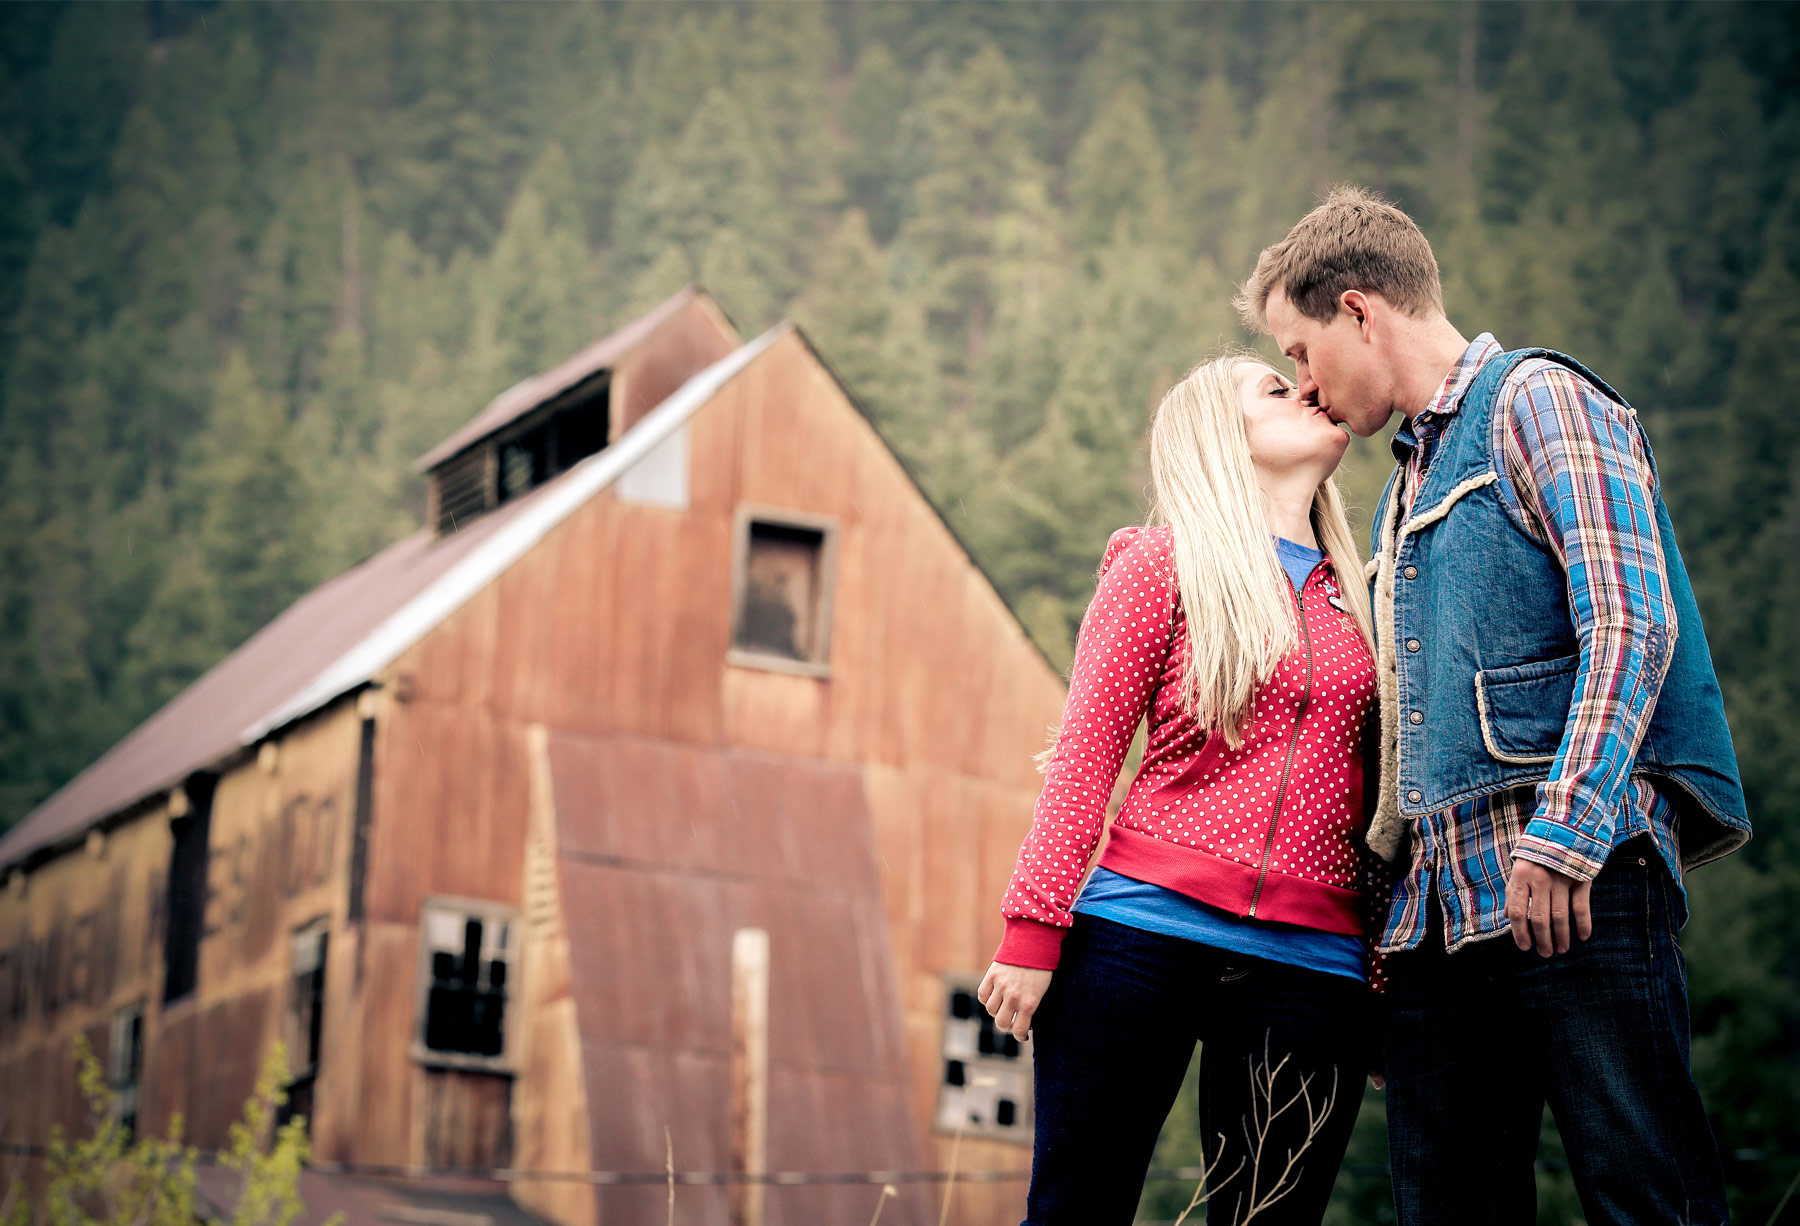 05-Denver-Colorado-Vail-Engagement-Photography-by-Vick-Photography-Winter-Engagement-Rustic-Mountains-Lucy-&-Matt.jpg